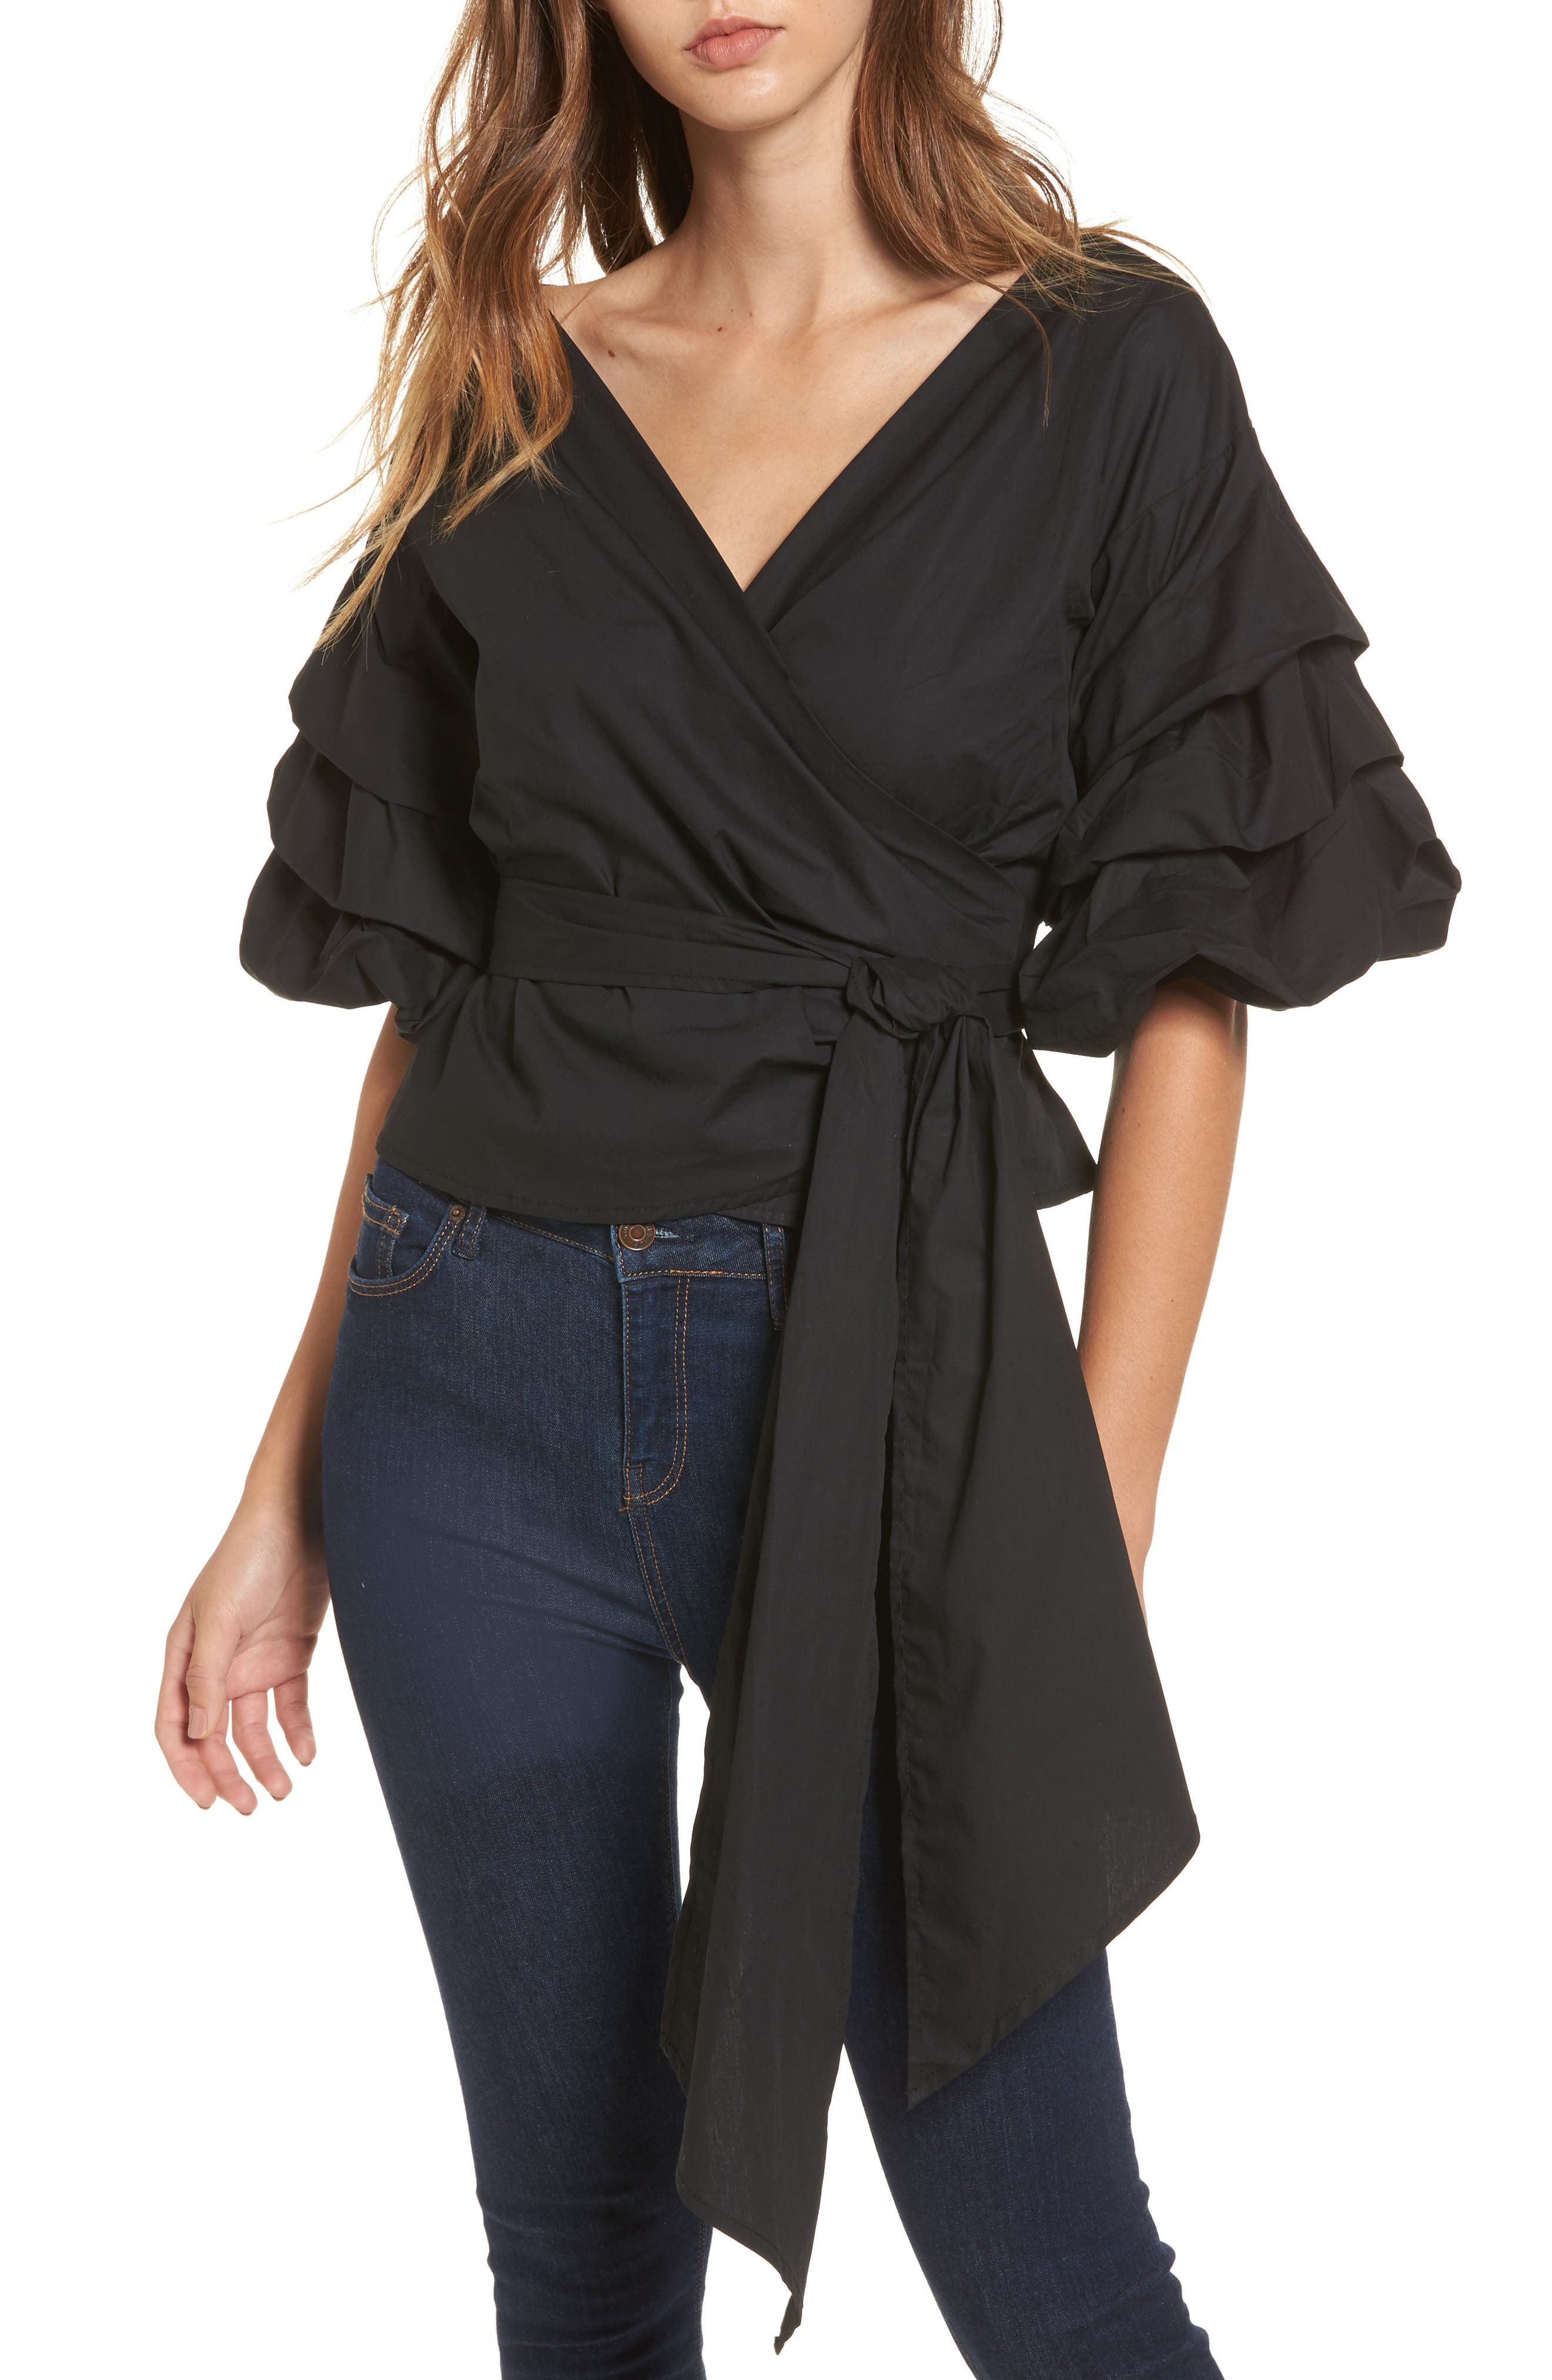 Esmerelda Wrap Top,                             Main thumbnail 1, color,                             Black